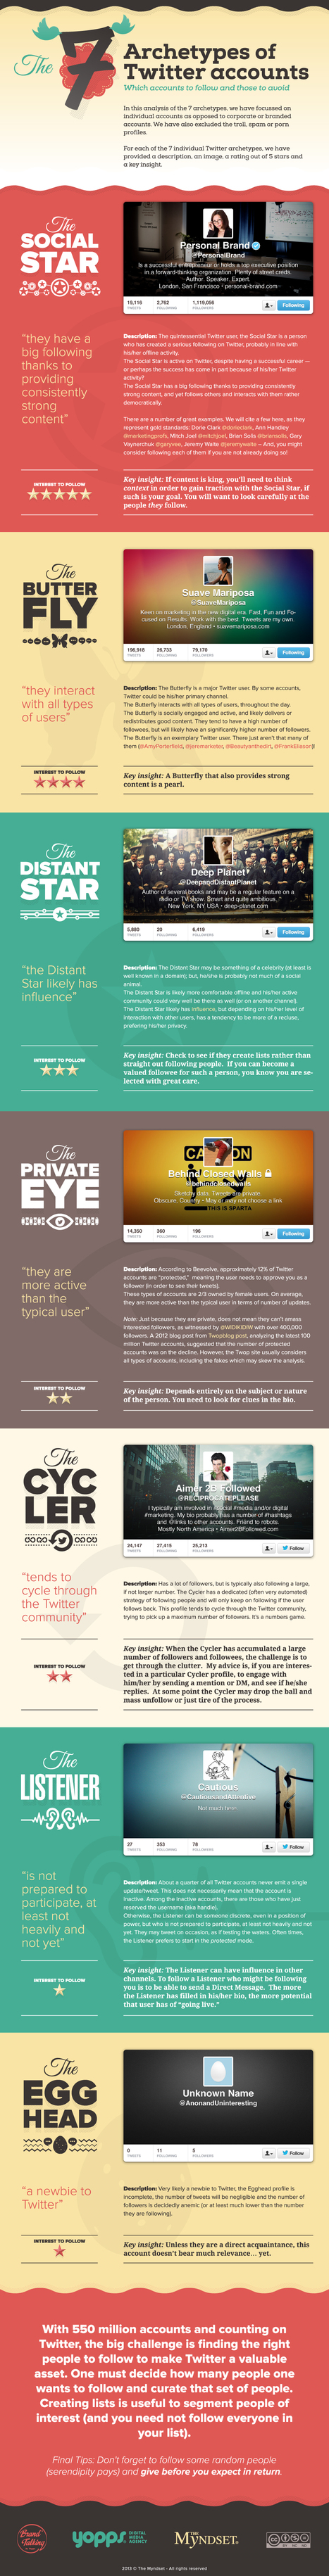 How To Identify The Right People To Follow On Twitter [infographic] - TheMyndset | #TheMarketingAutomationAlert | Content Curation, Social Media and Tech | Scoop.it